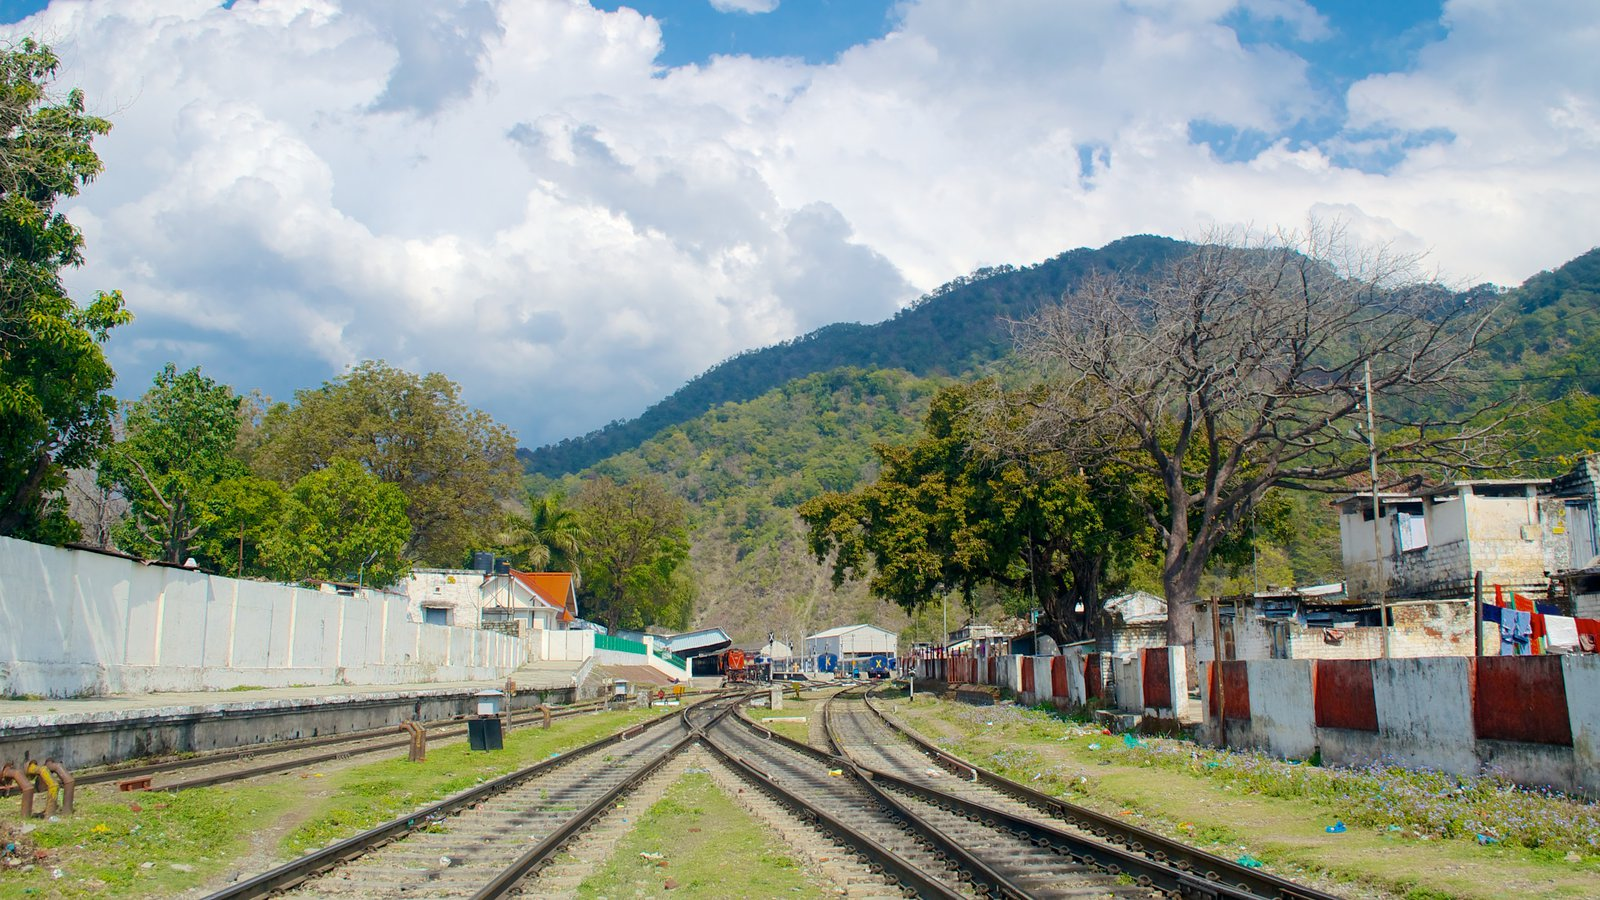 Hd wallpaper uttarakhand - Kathgodam Showing Landscape Views Railway Items And A Small Town Or Village